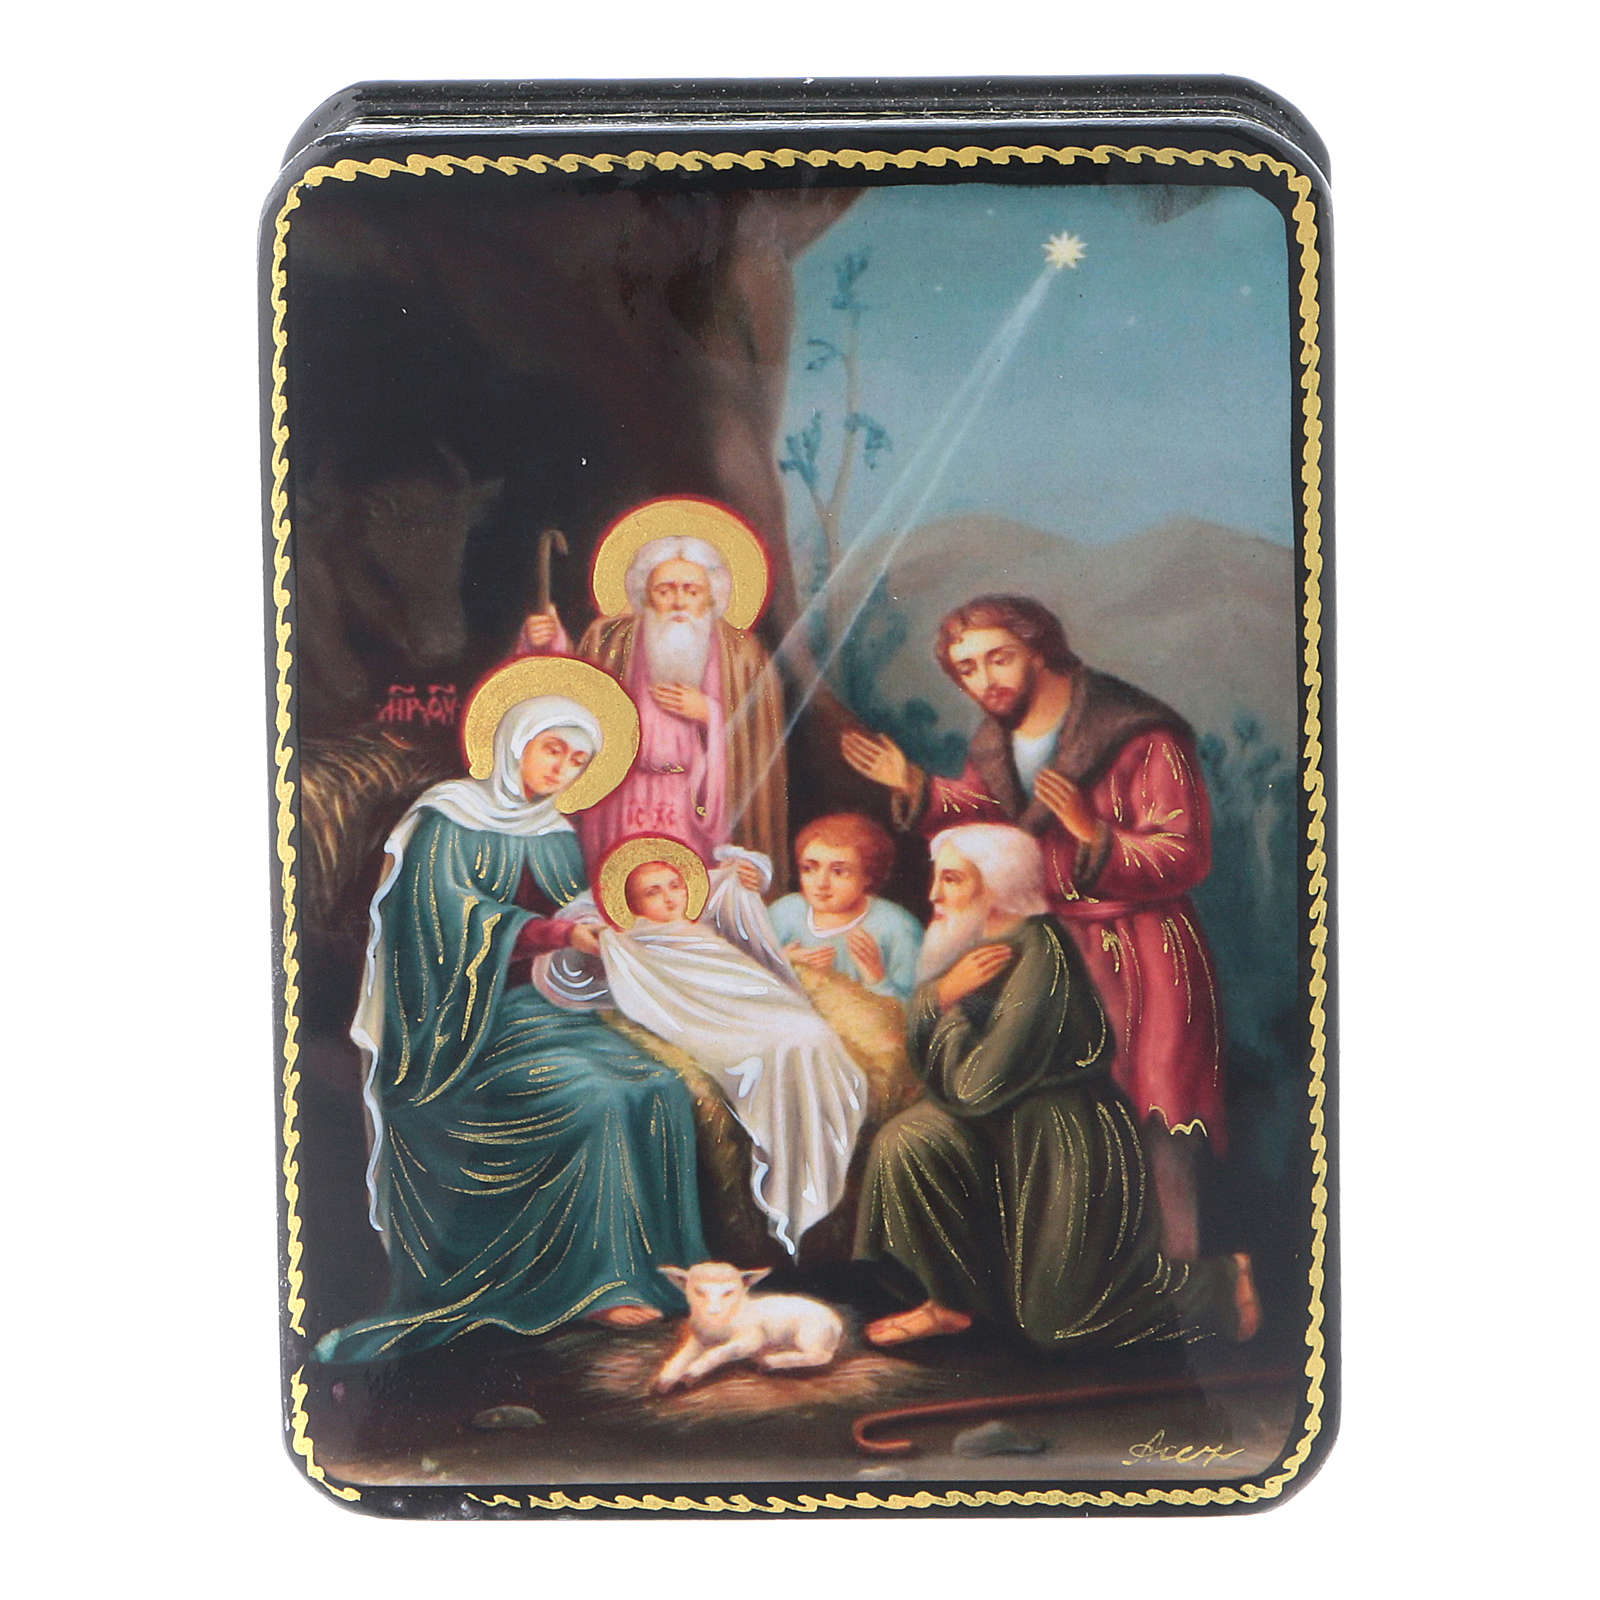 Russian Papier-mâché box The Birth of Christ reproduction 11x8 cm Fedoskino style 4